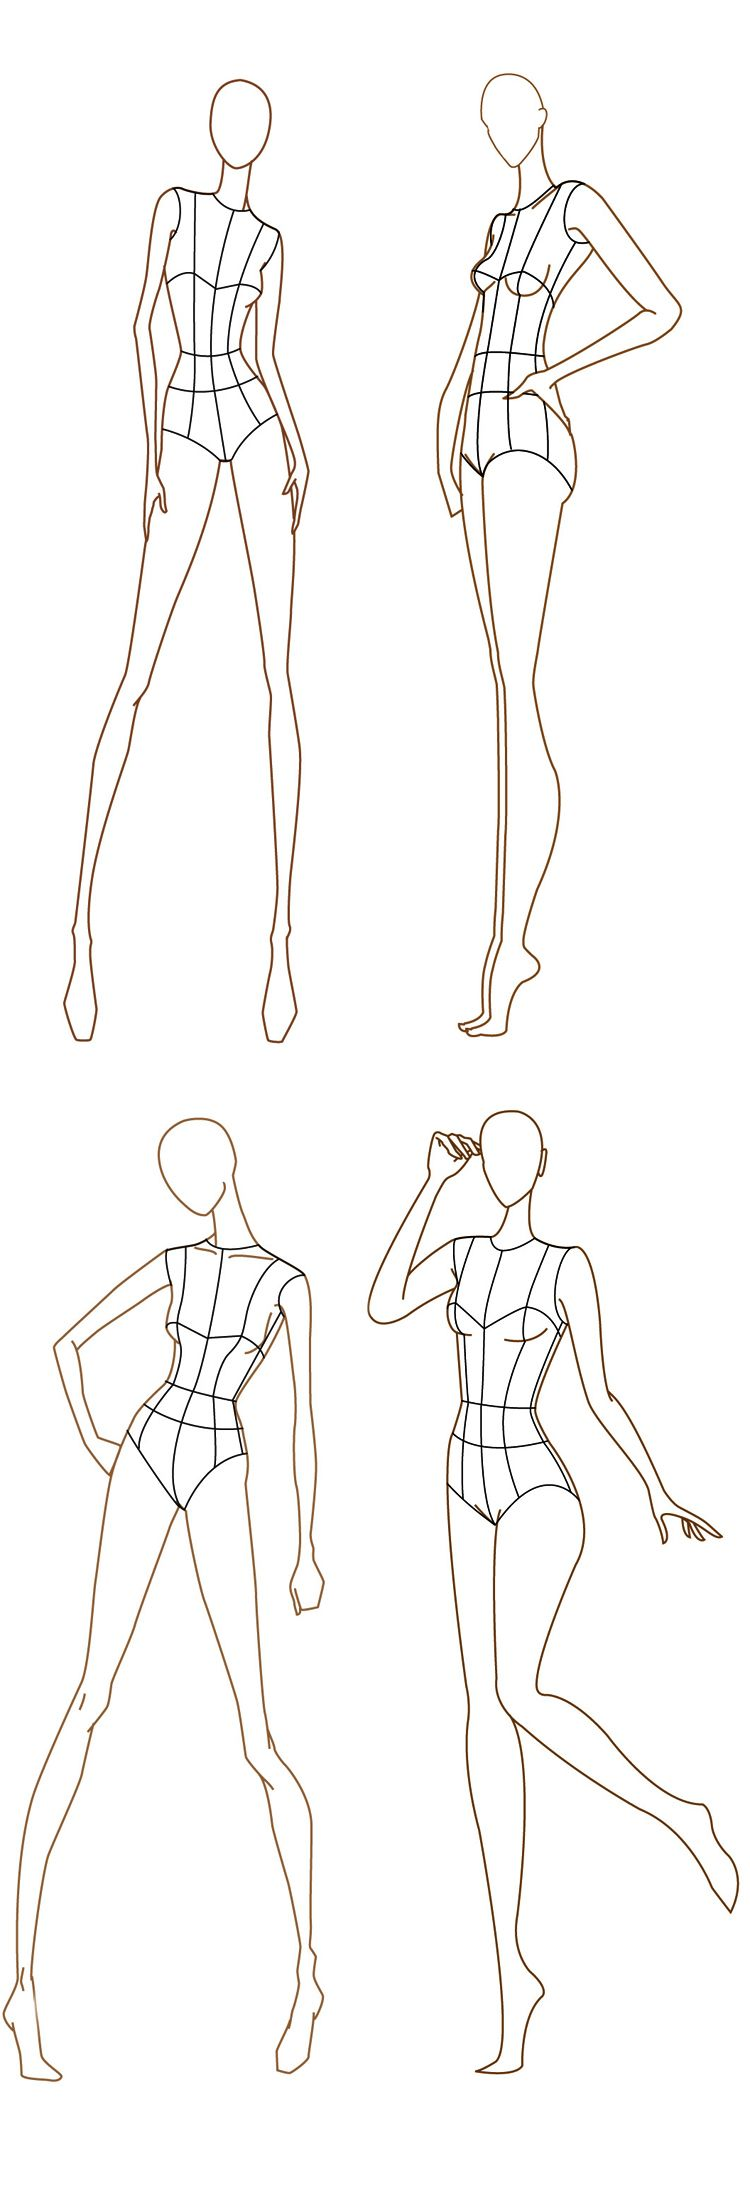 Pin by kris lee on gonna try drawing it pinterest fashion figure